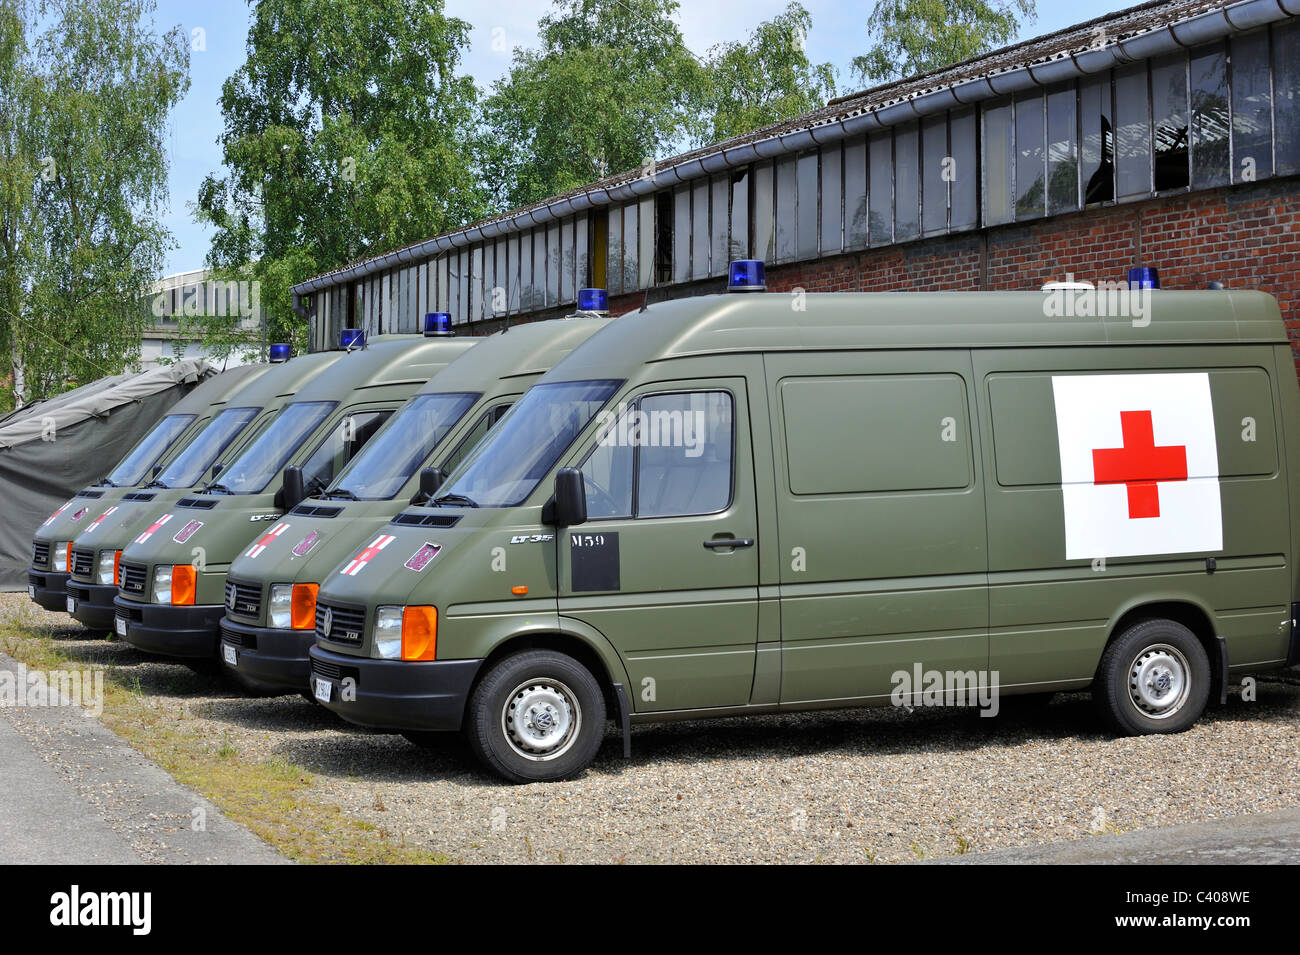 Military ambulances of the Belgian Medical Component, Belgium - Stock Image